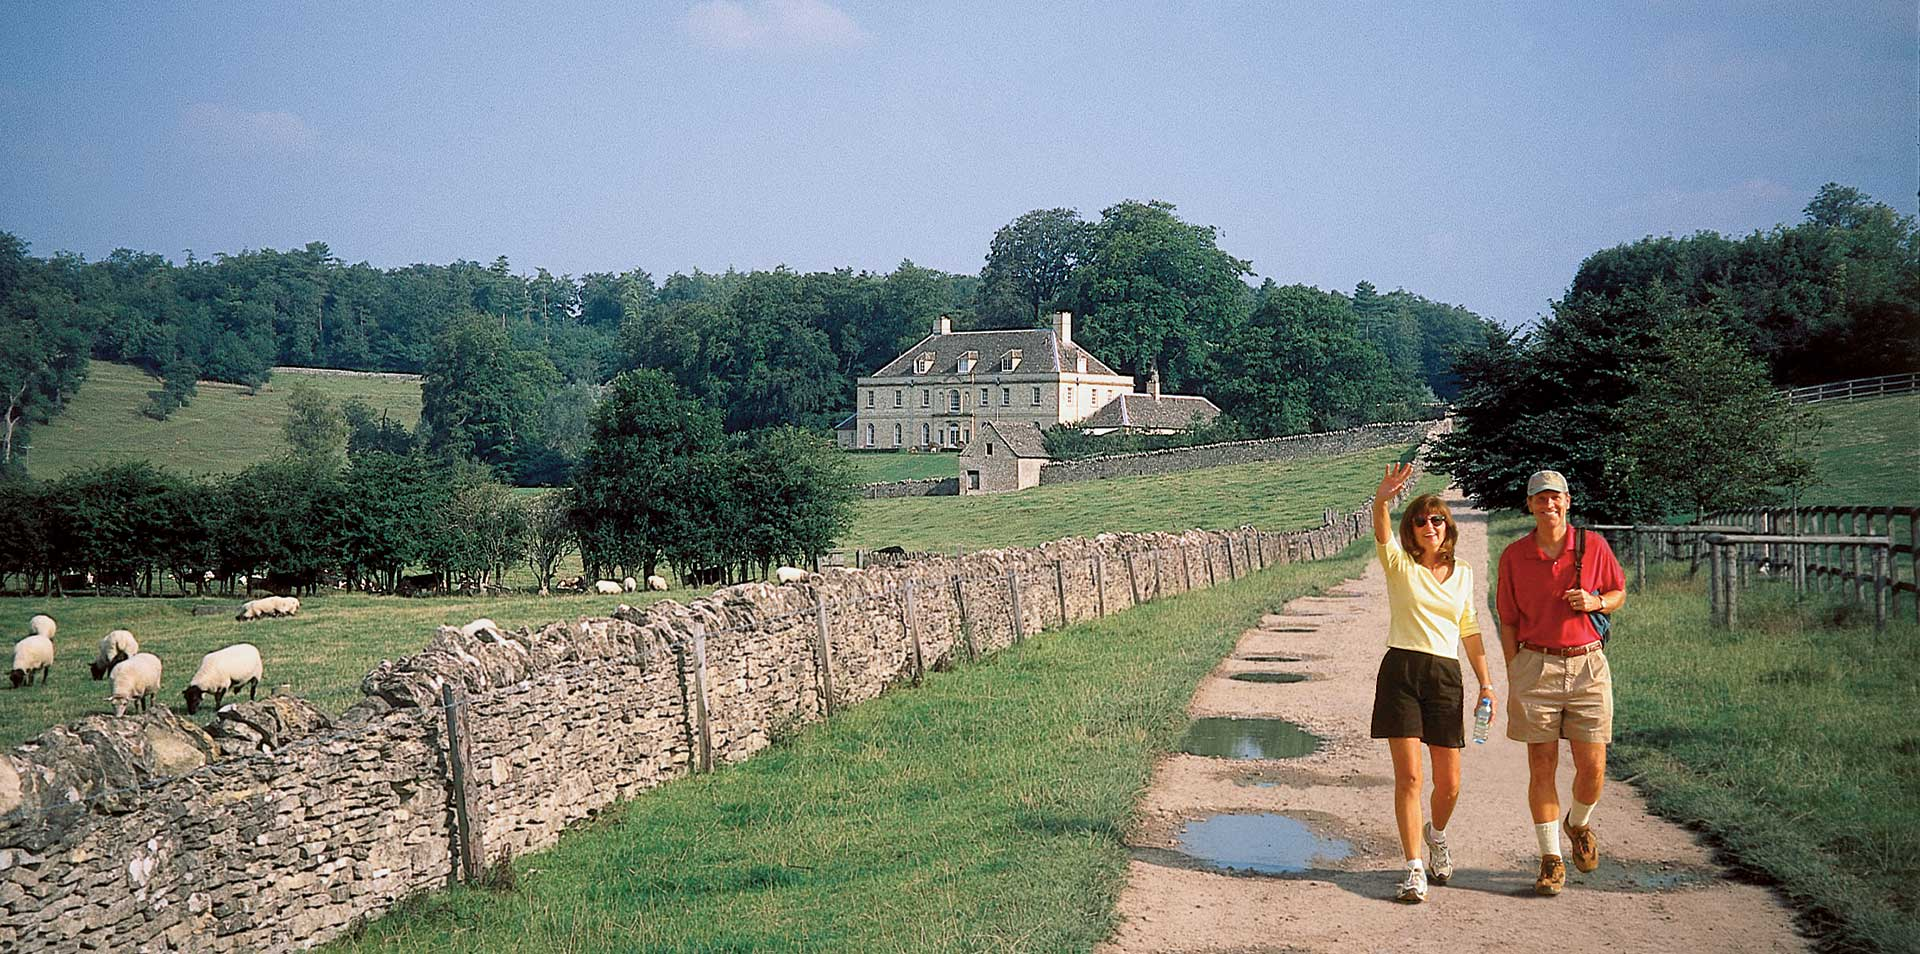 Europe United Kingdom England Cotswolds green meadows stone houses rolling hills - luxury vacation destinations